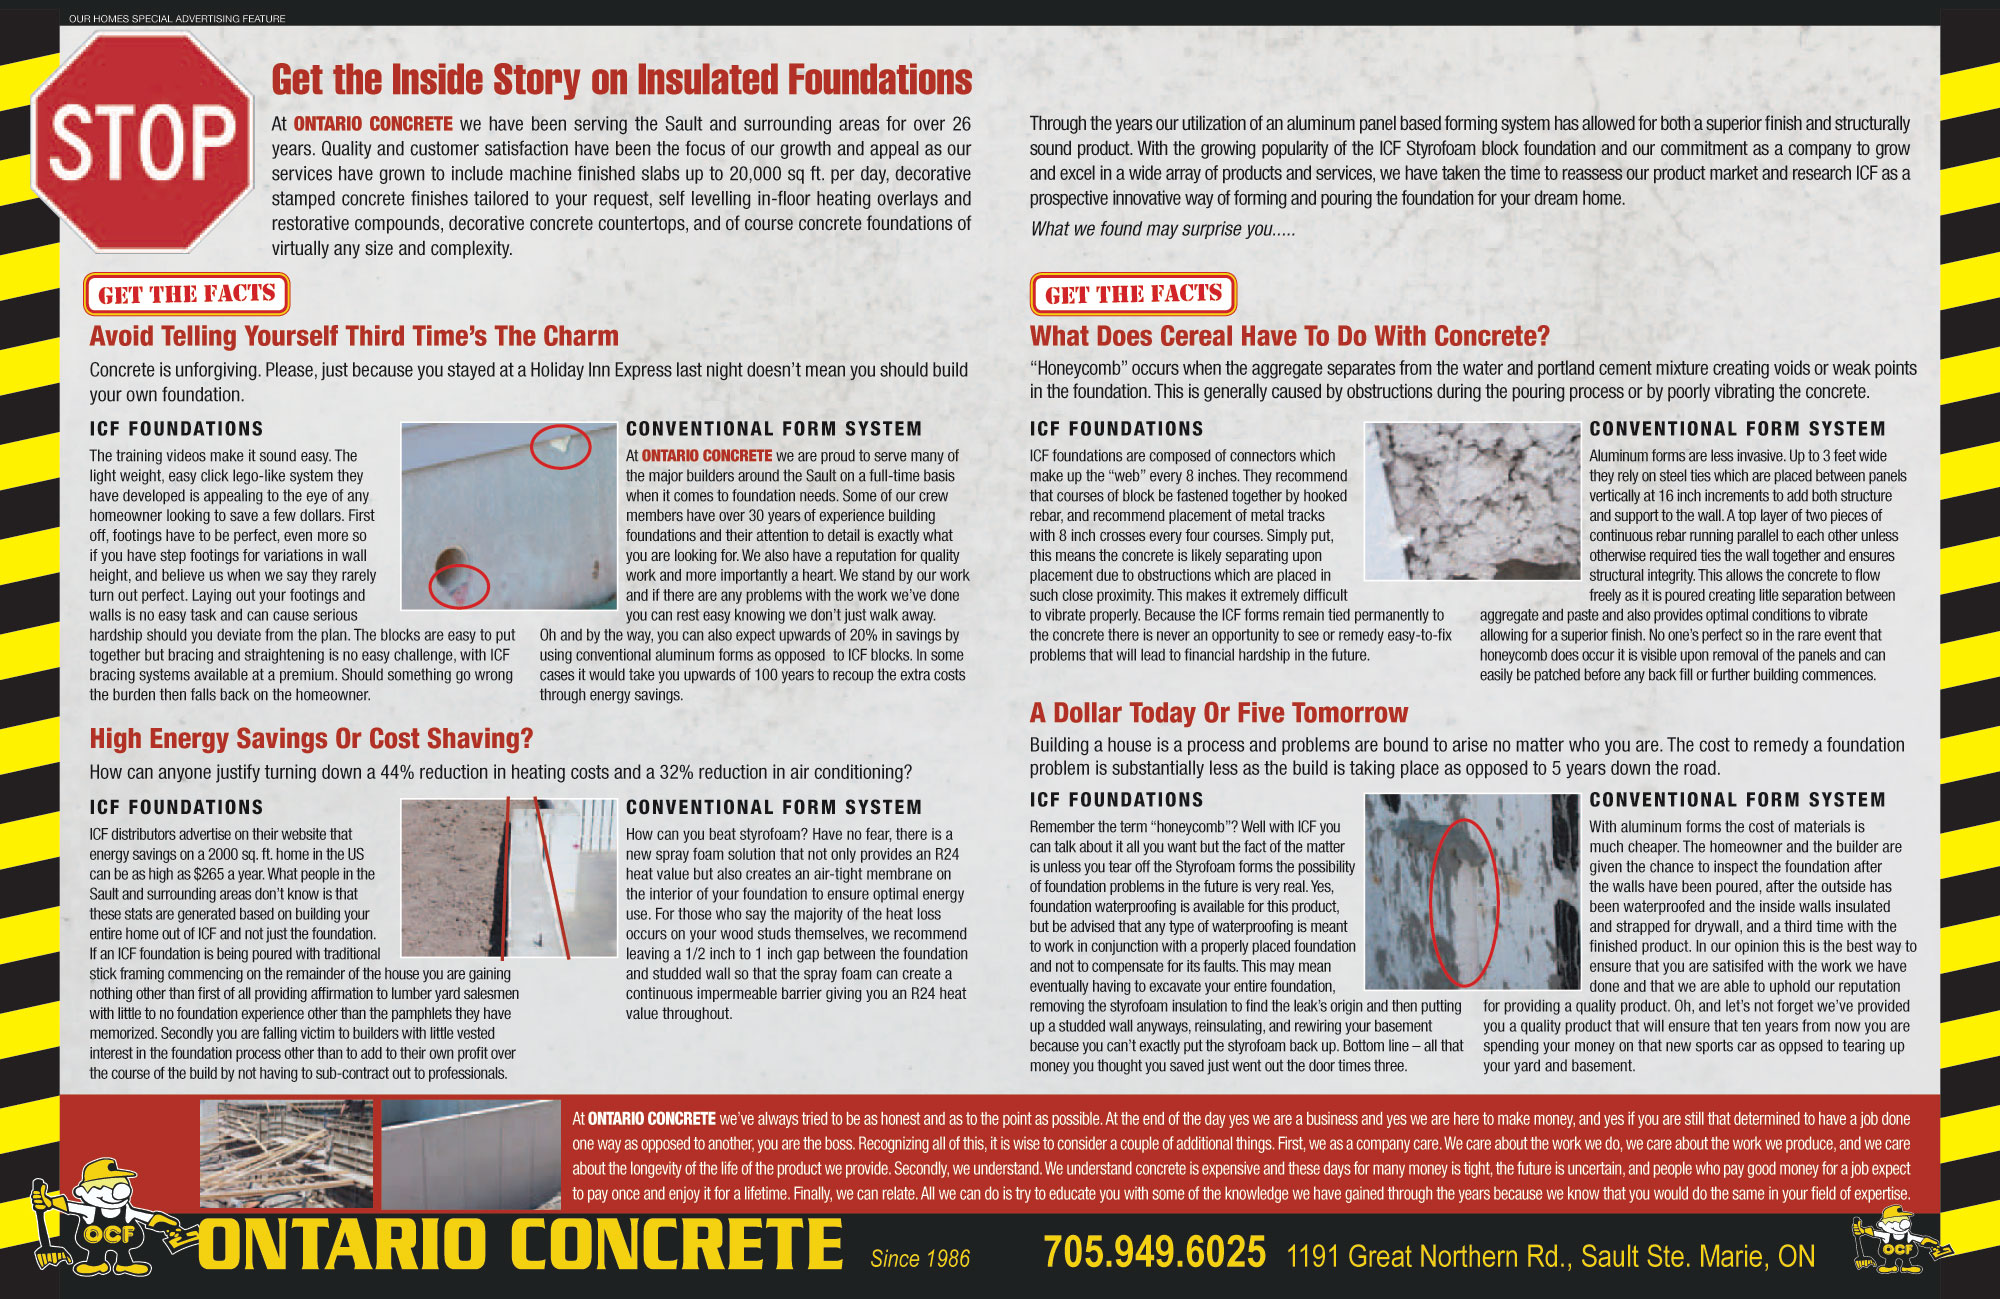 Get the Inside Story on Insulated Concrete Foundations